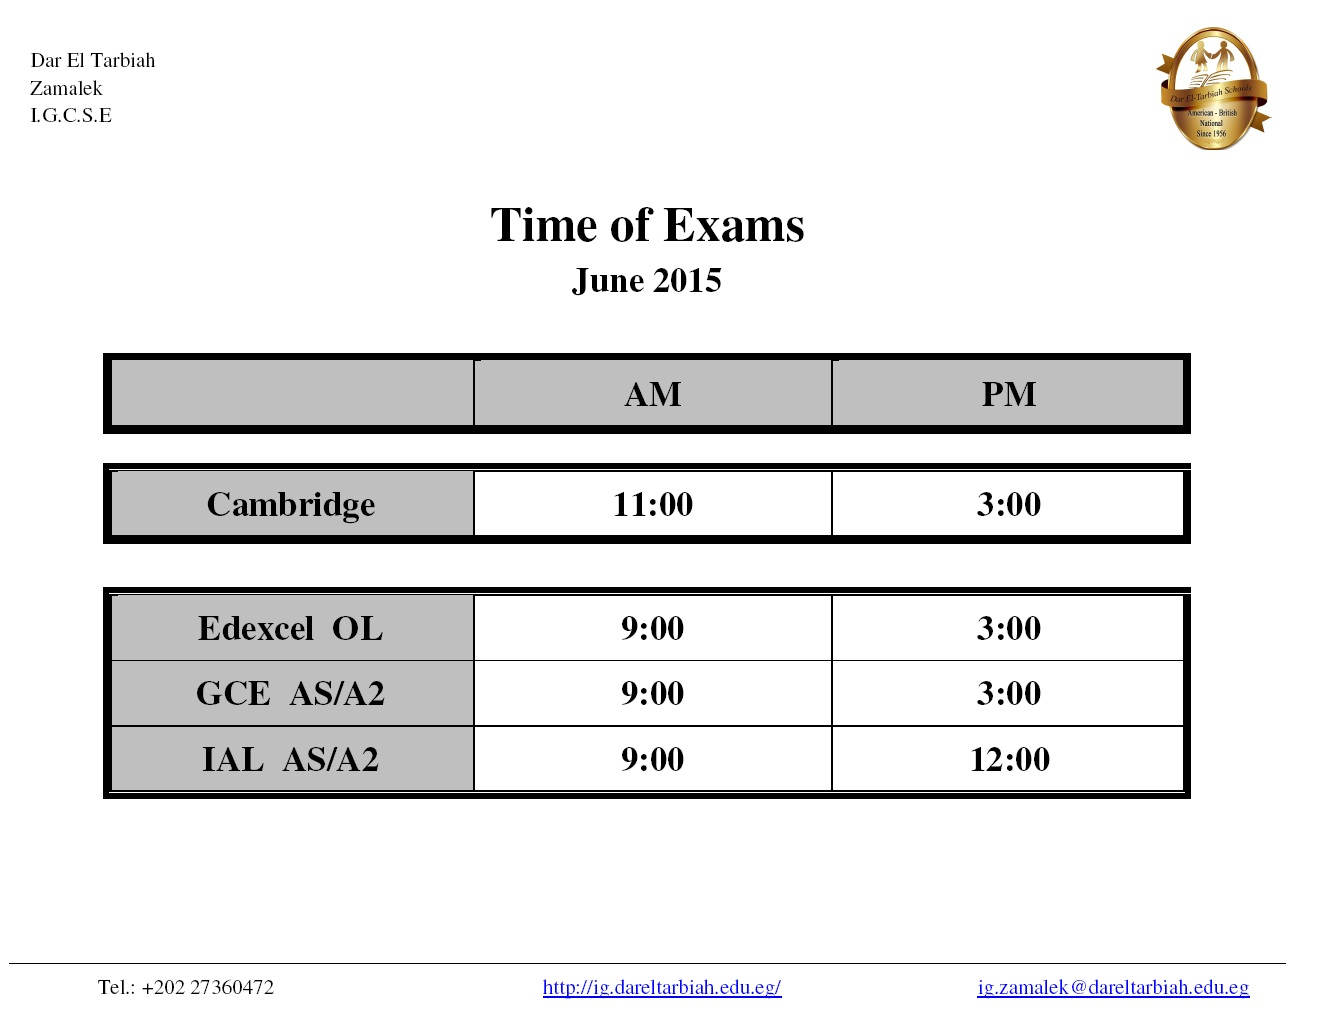 IG Zamalek - General Exam Timetable June 2015